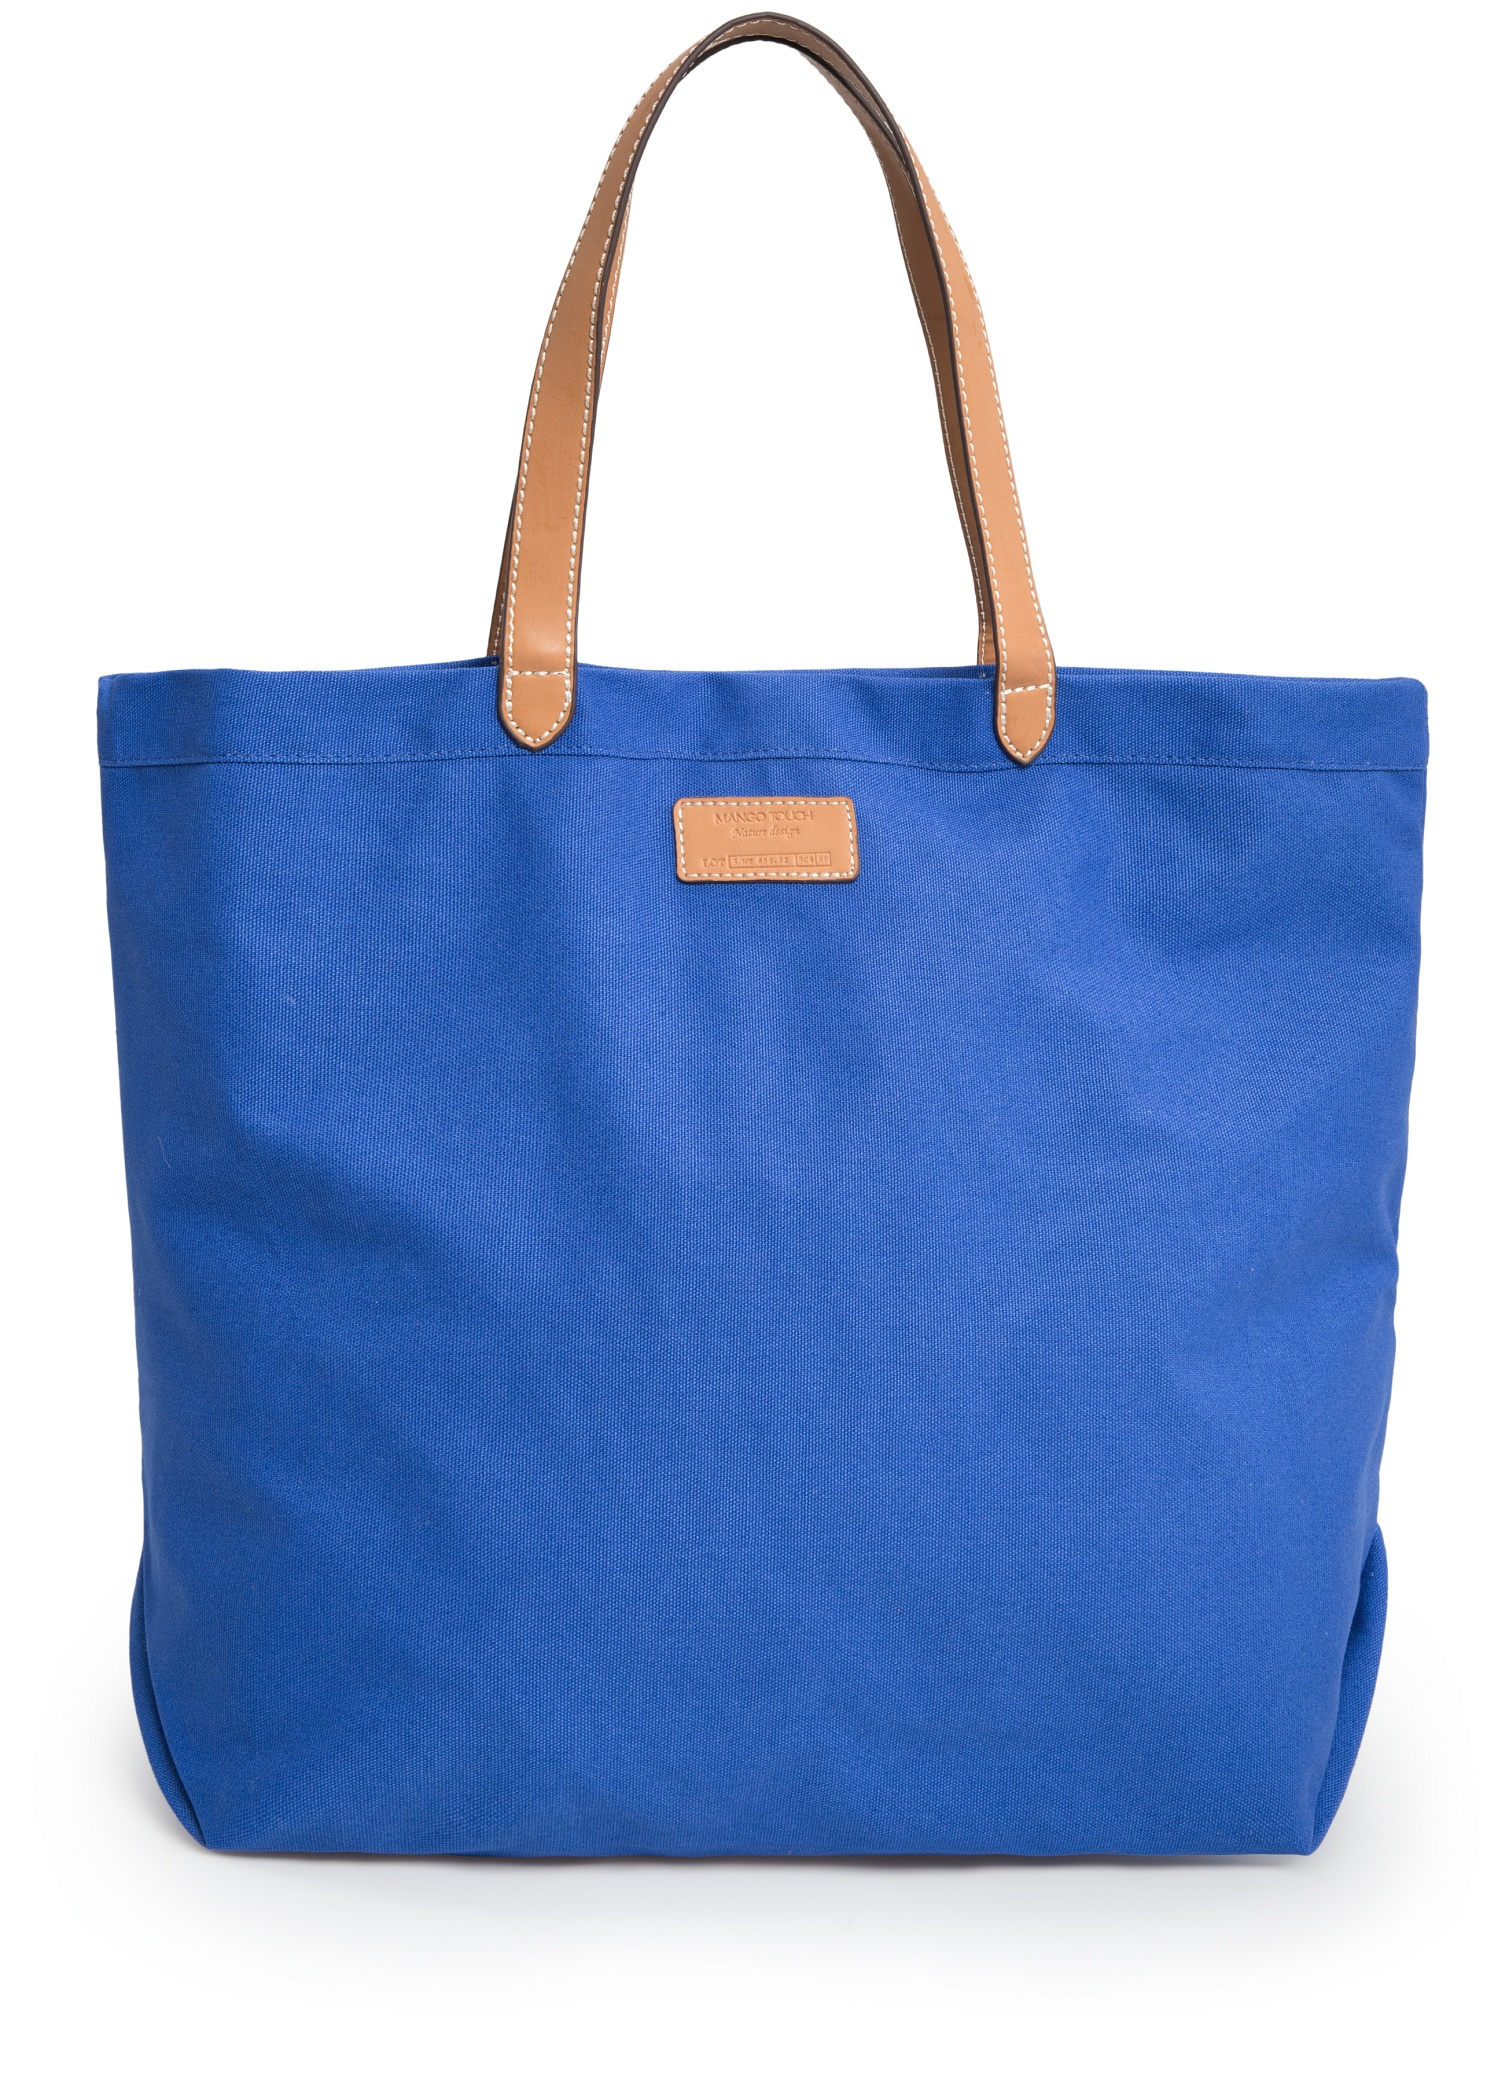 Mango Canvas Shopper Bag in Blue | Lyst